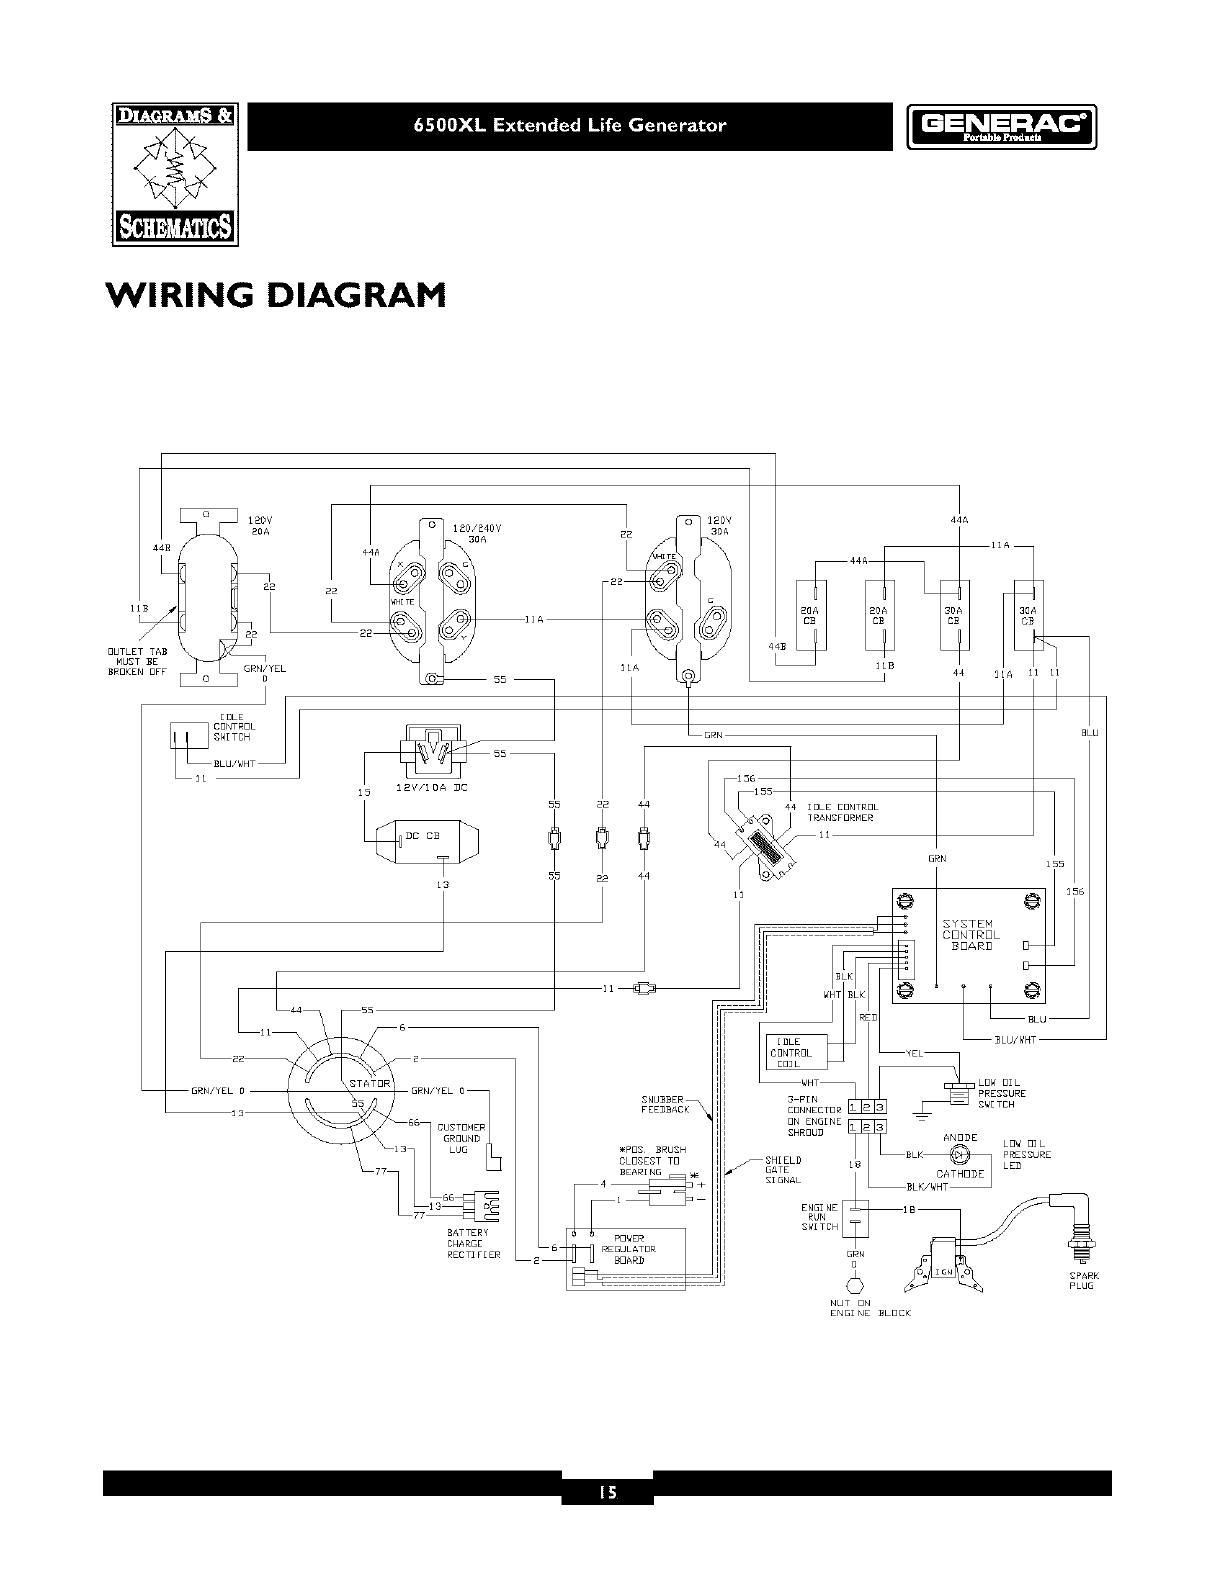 abacbfe4 09c9 46f3 b904 b7a0ca98baaa bgf page 15 of generac portable generator 6500xl user guide abac air compressor wiring diagram at bakdesigns.co